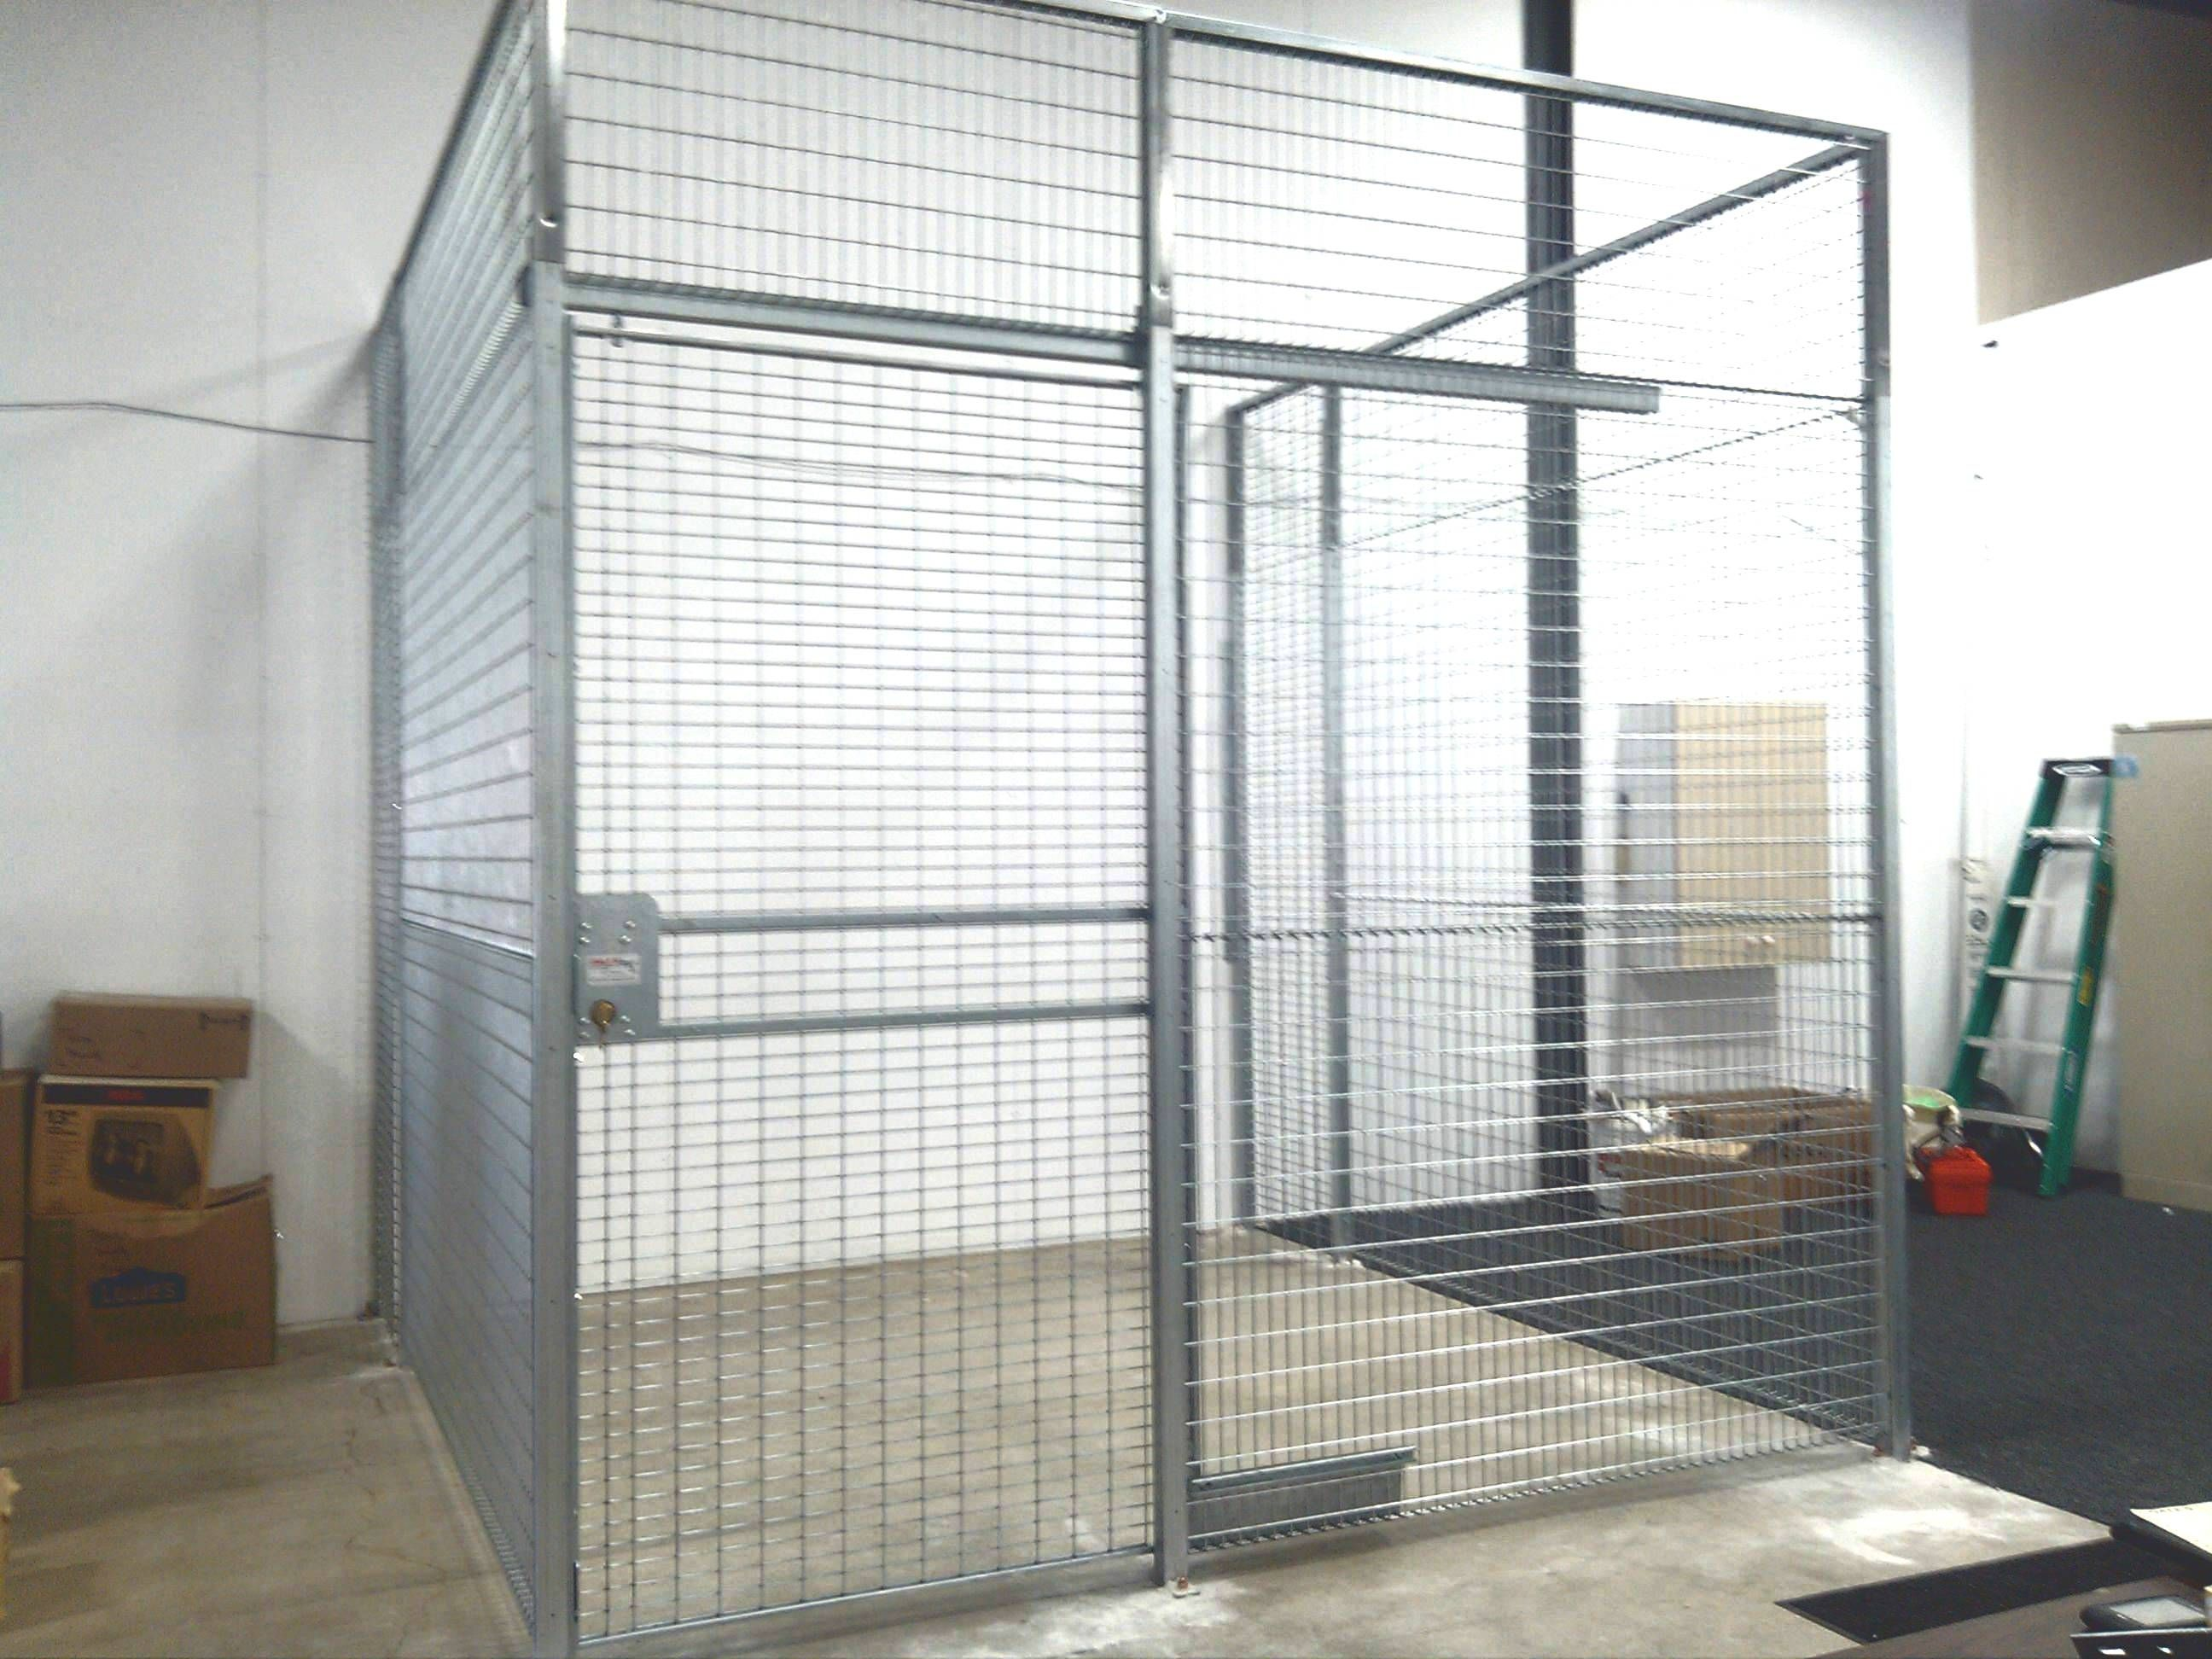 Security Cage Edison NJ, Security Cages installed in Raritan Center ...